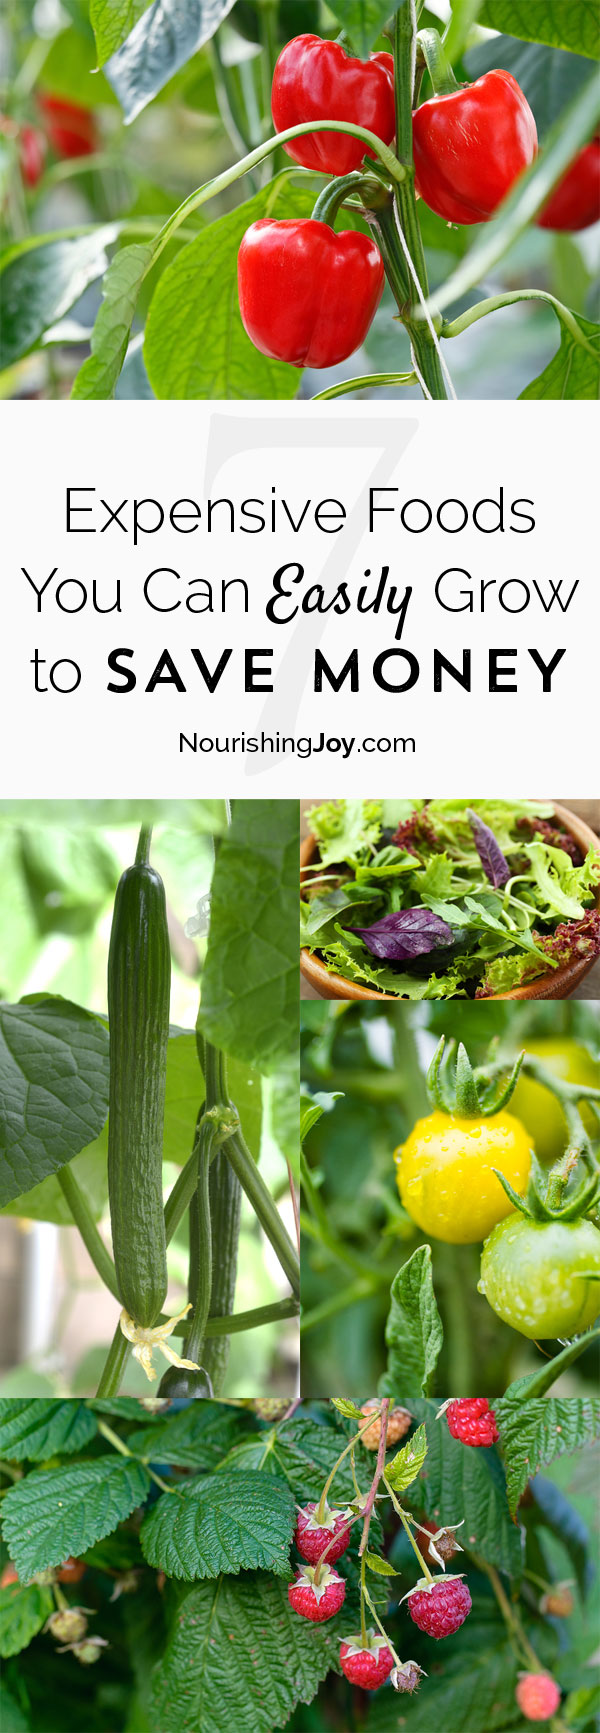 Some groceries are SO expensive! Save significant money each year by growing these otherwise expensive foods.